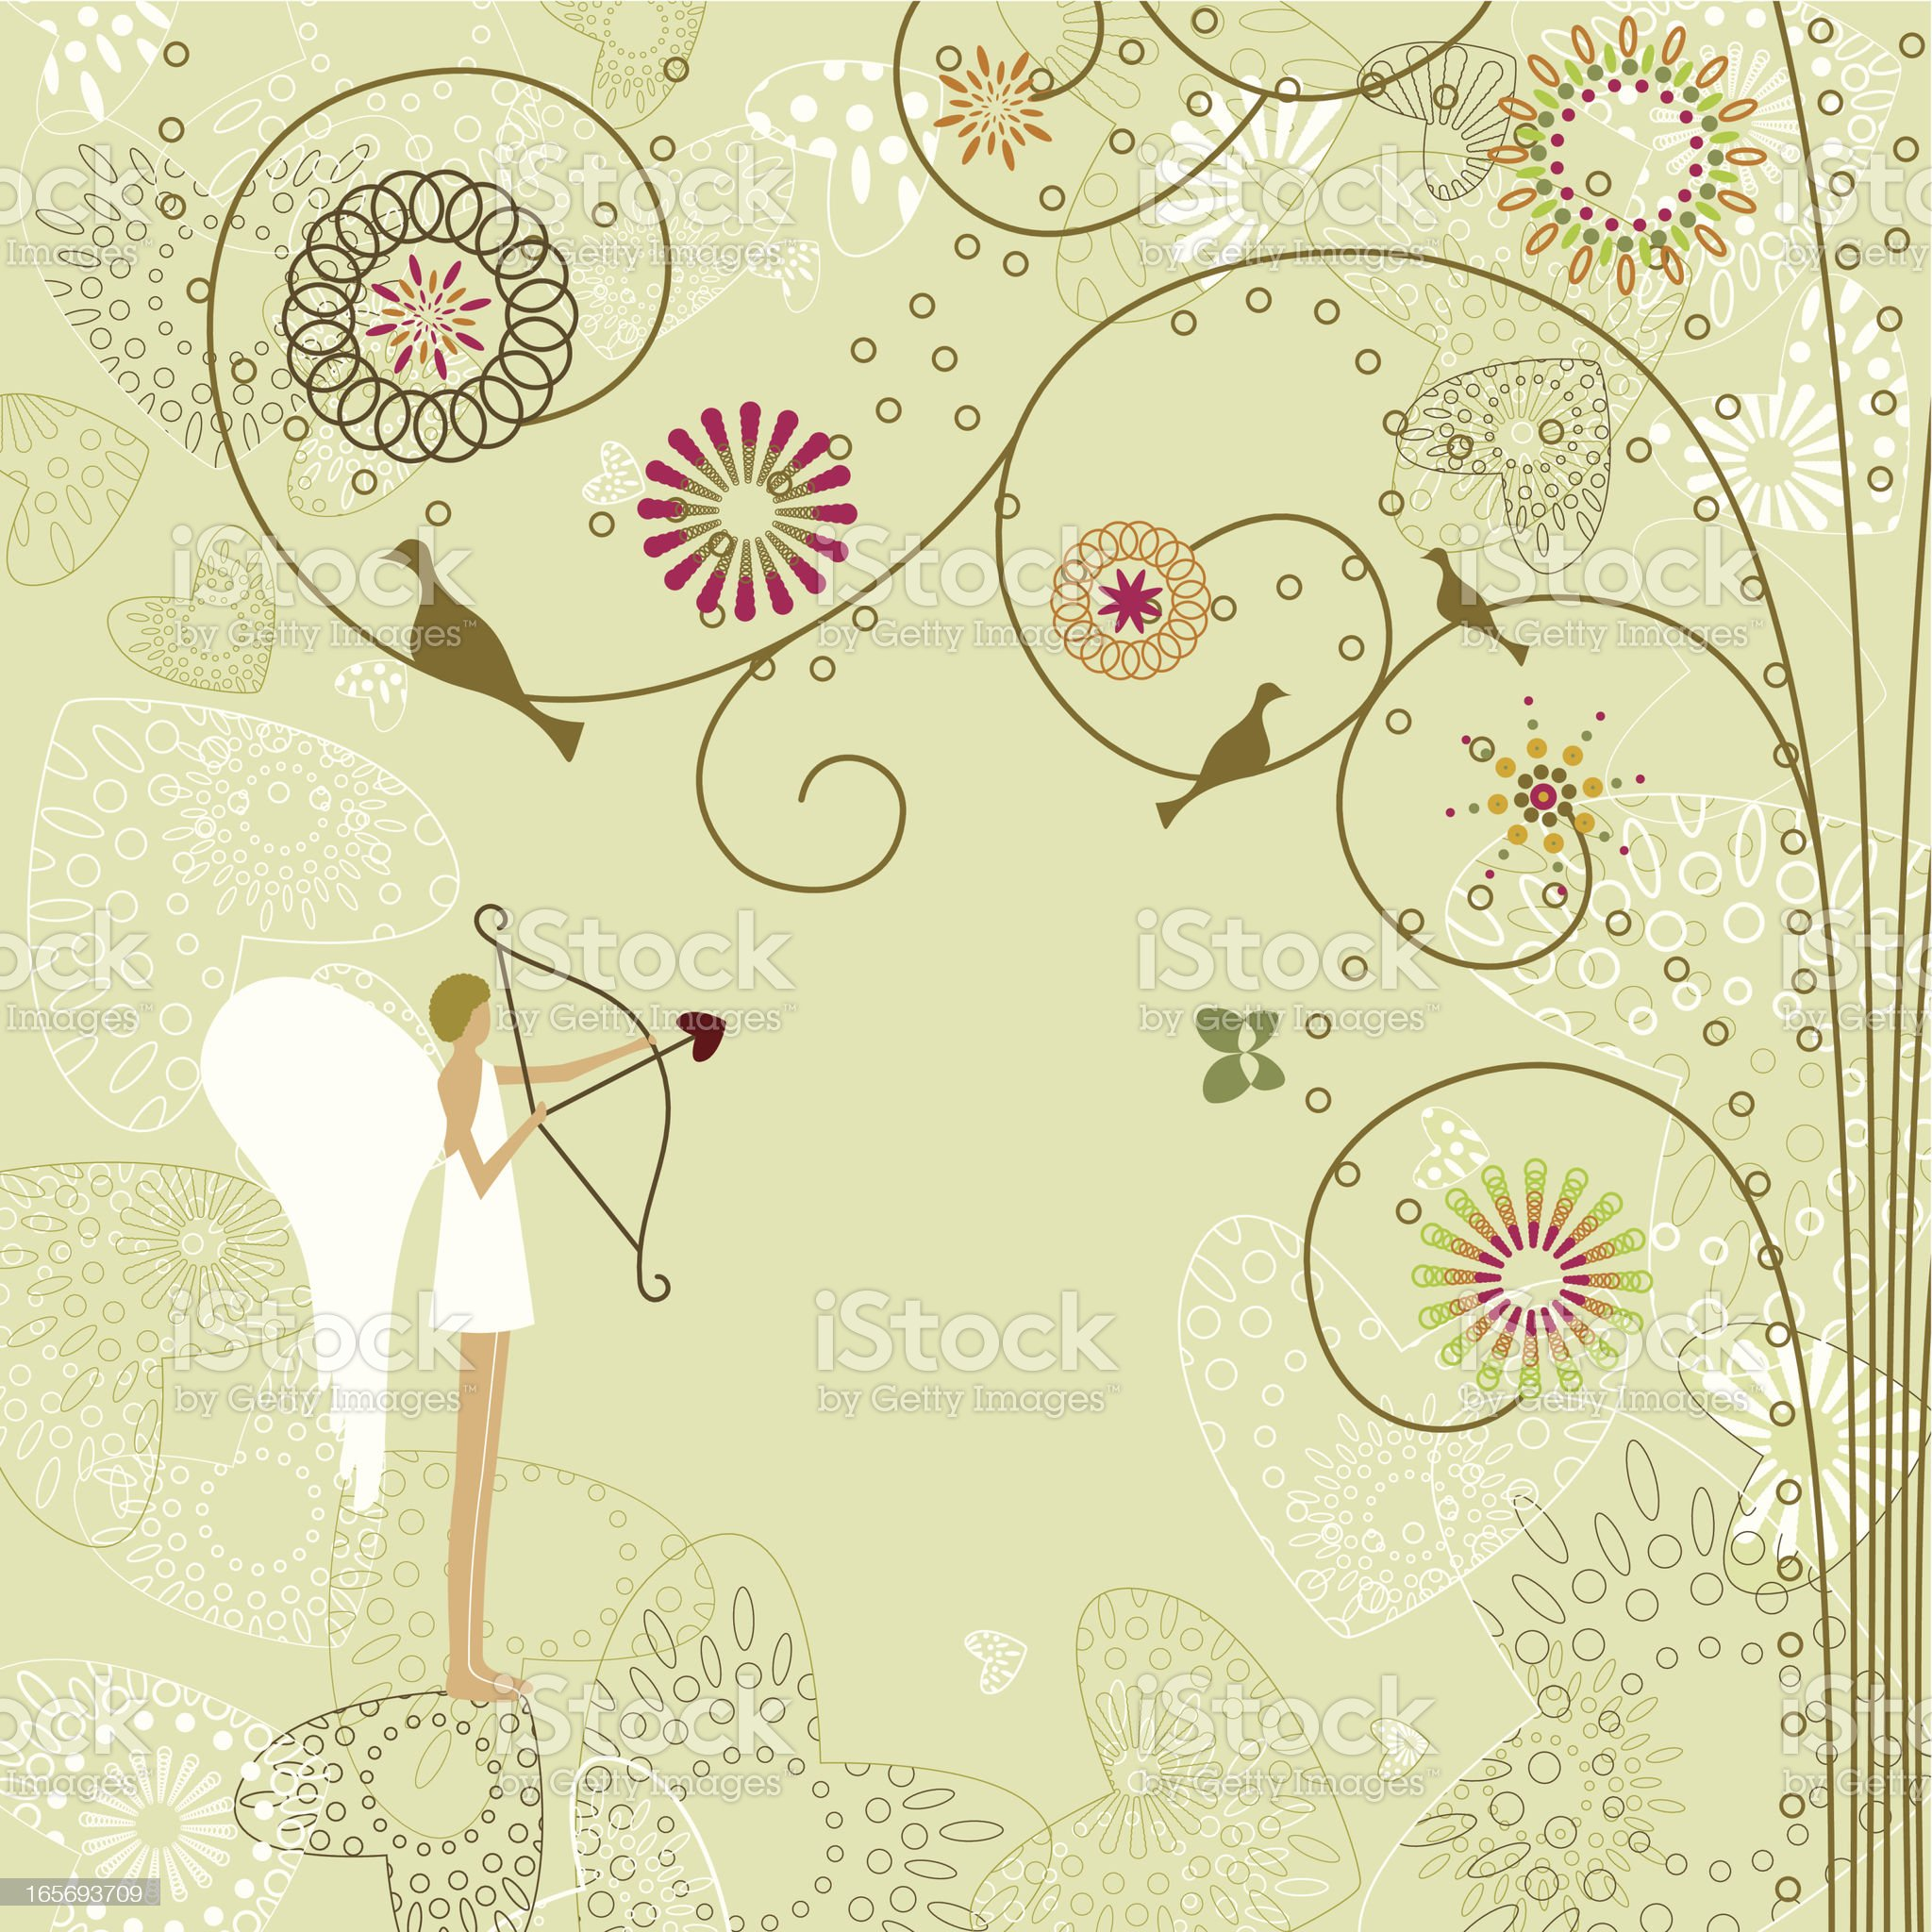 Vintage Cupid royalty-free stock vector art